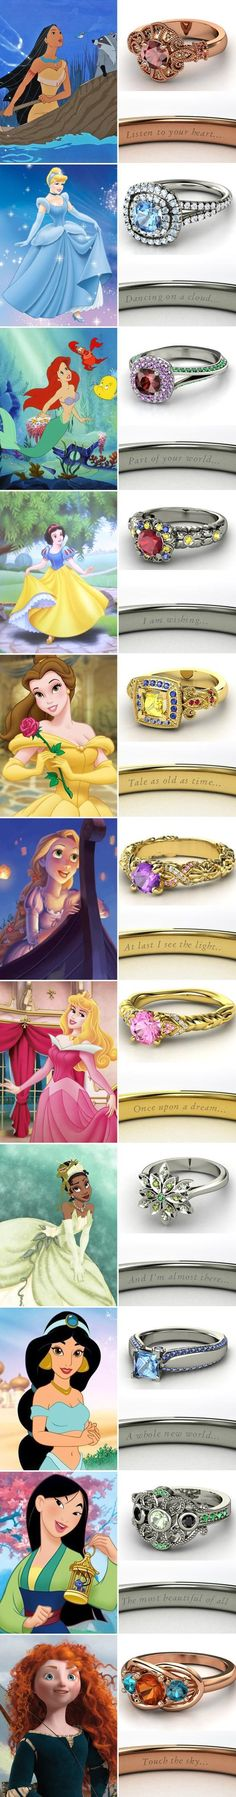 55 Sparkling Engagement and Wedding Rings (with Tips) | http://www.deerpearlflowers.com/55-sparkling-engagement-and-wedding-rings-with-tips/